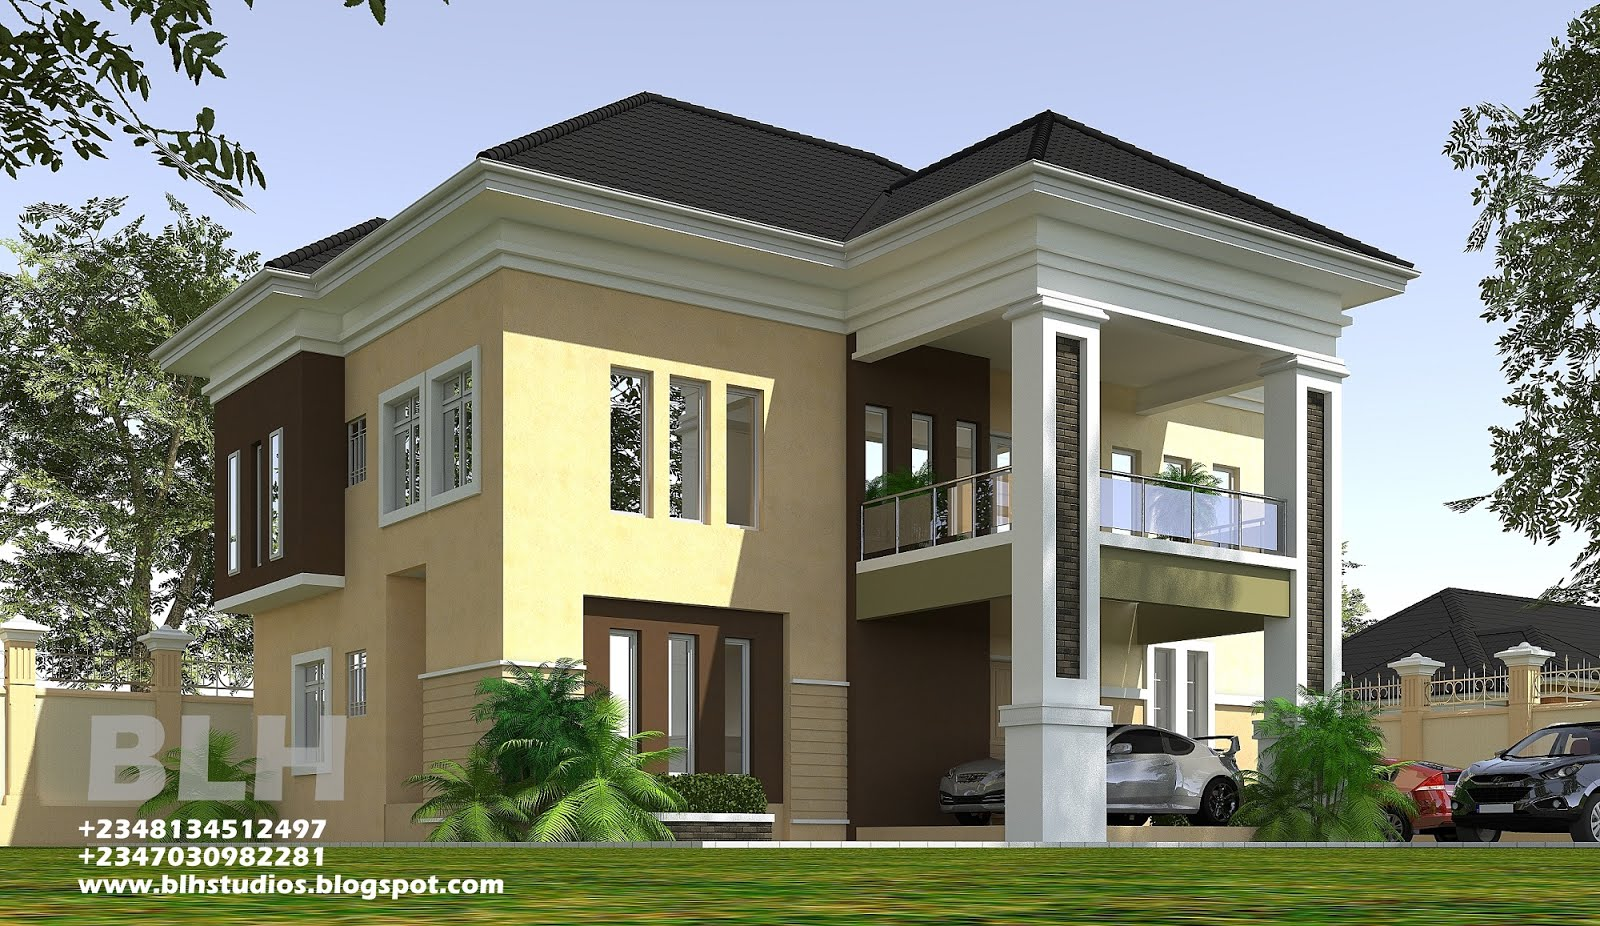 Architectural designs by blacklakehouse 2 bedroom for Duplex bed